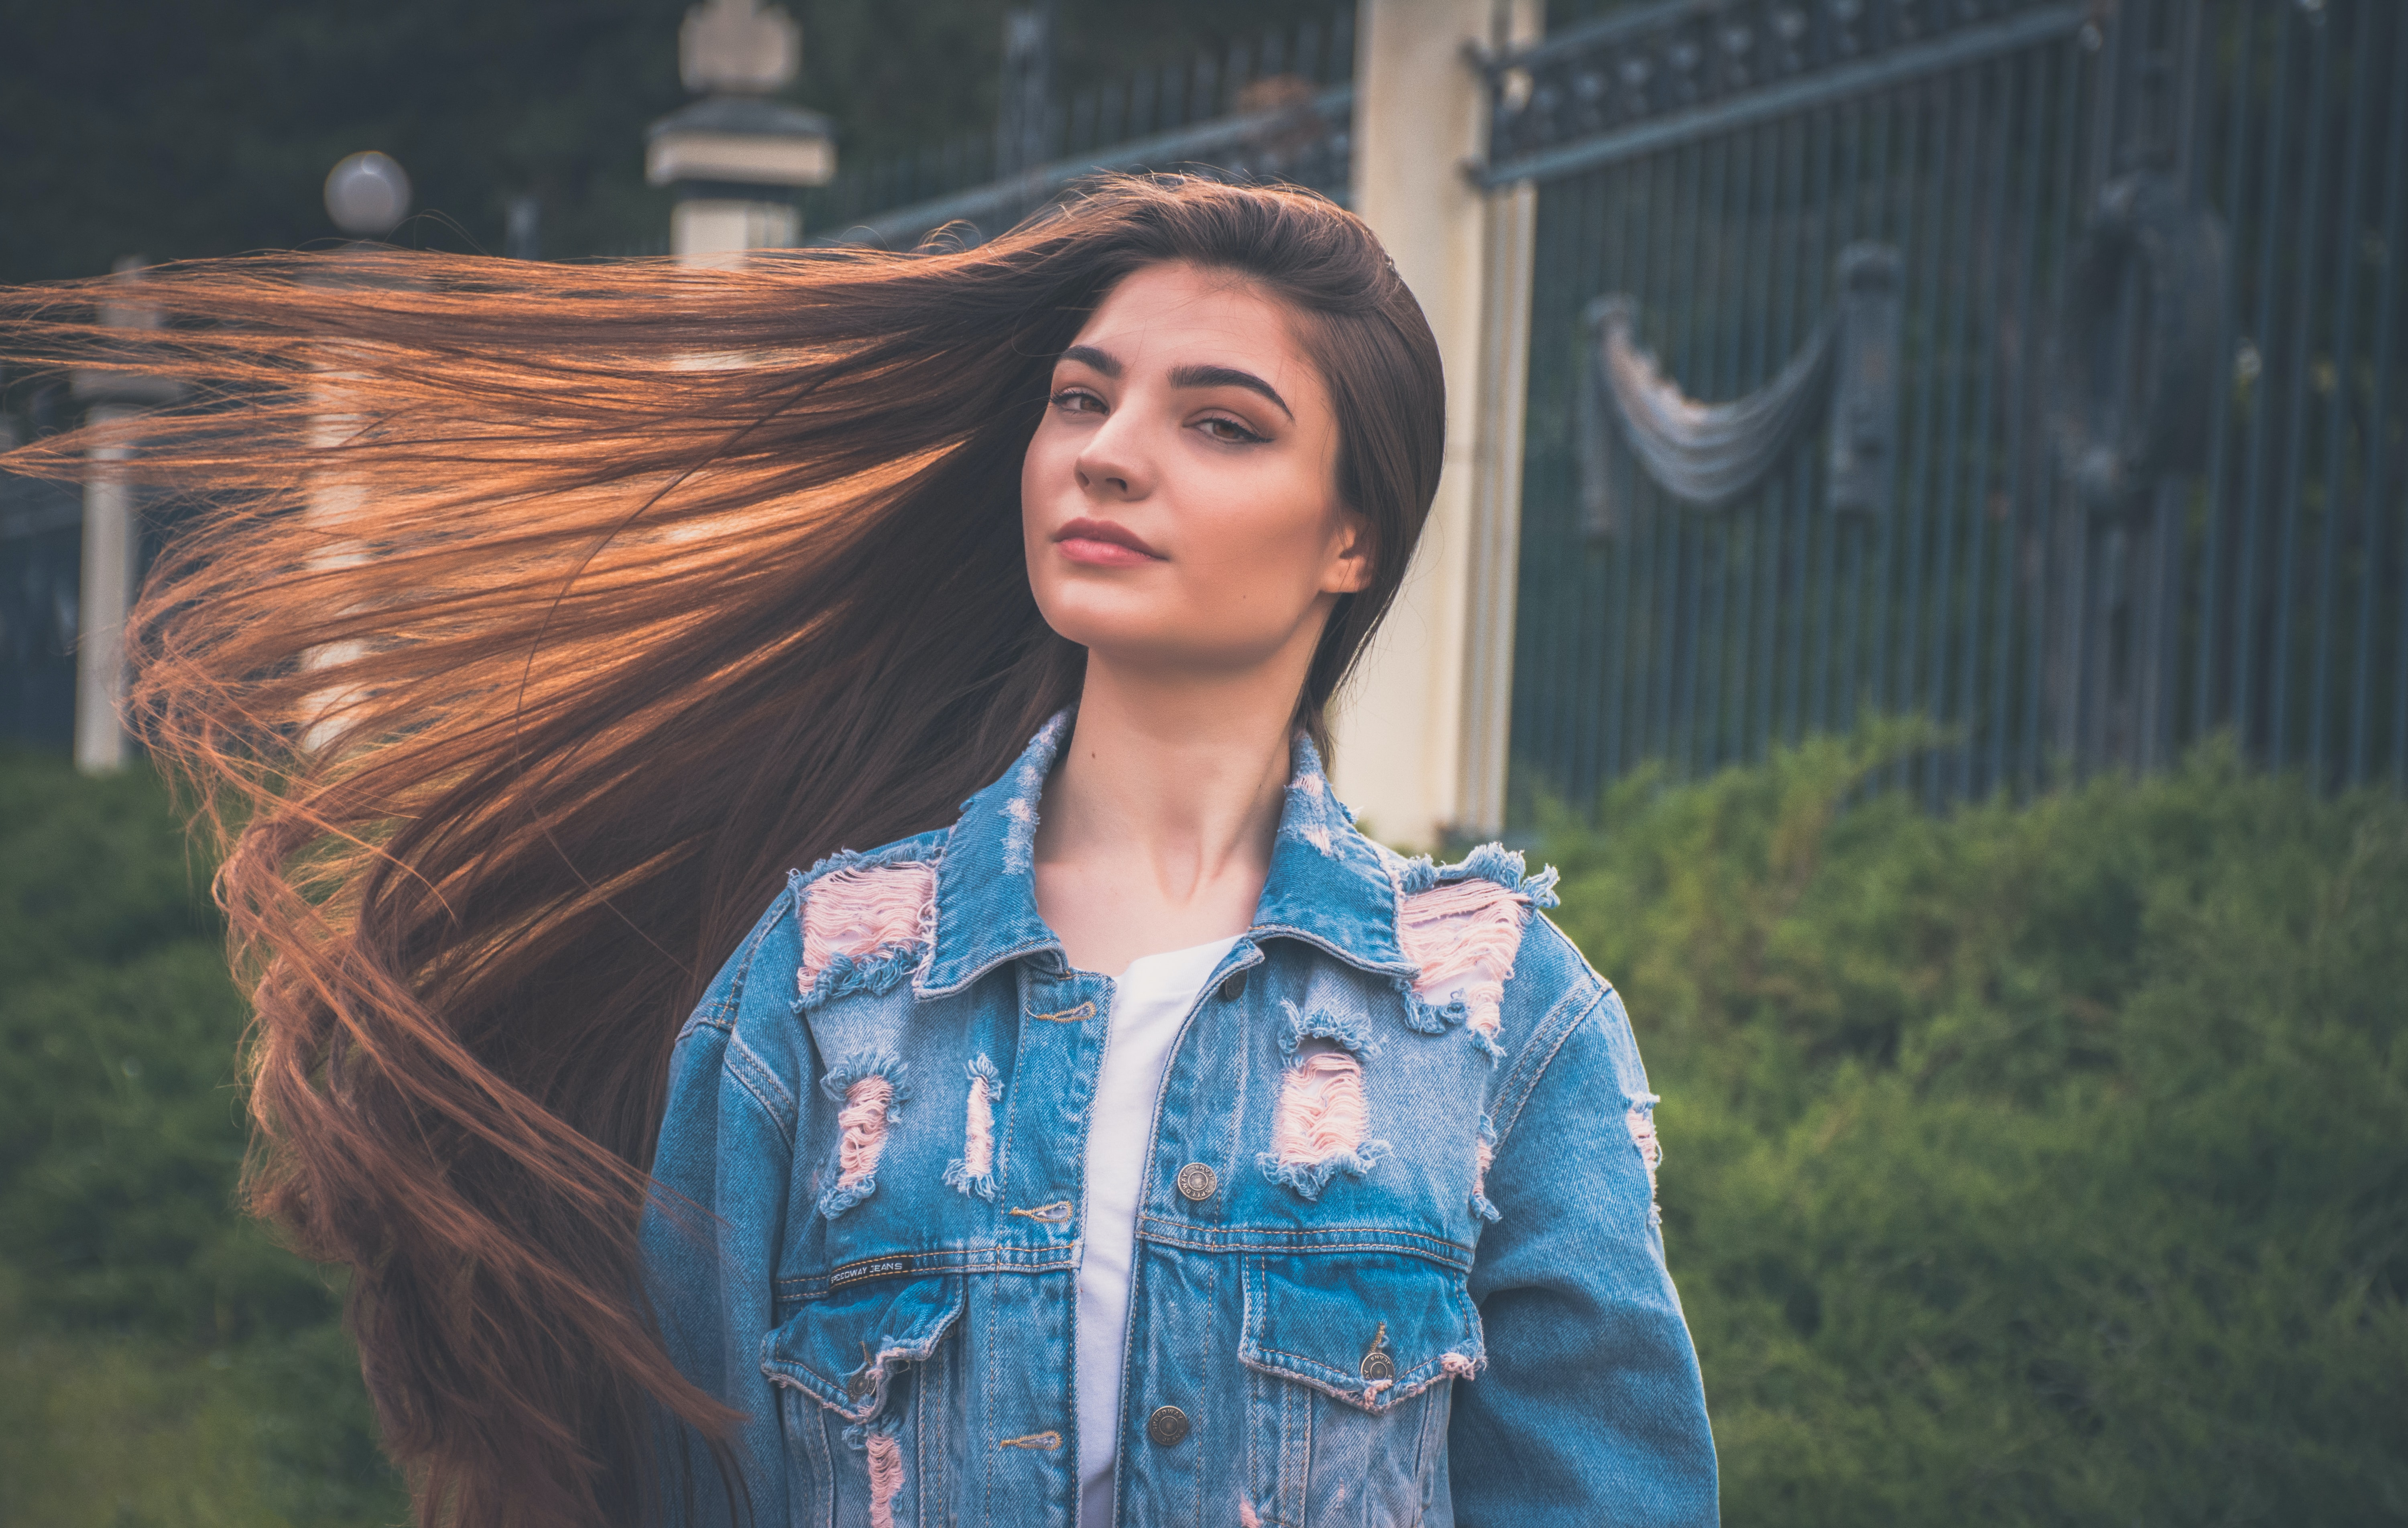 A smiling woman in a distressed denim jacket whips around her long brown hair outdoors